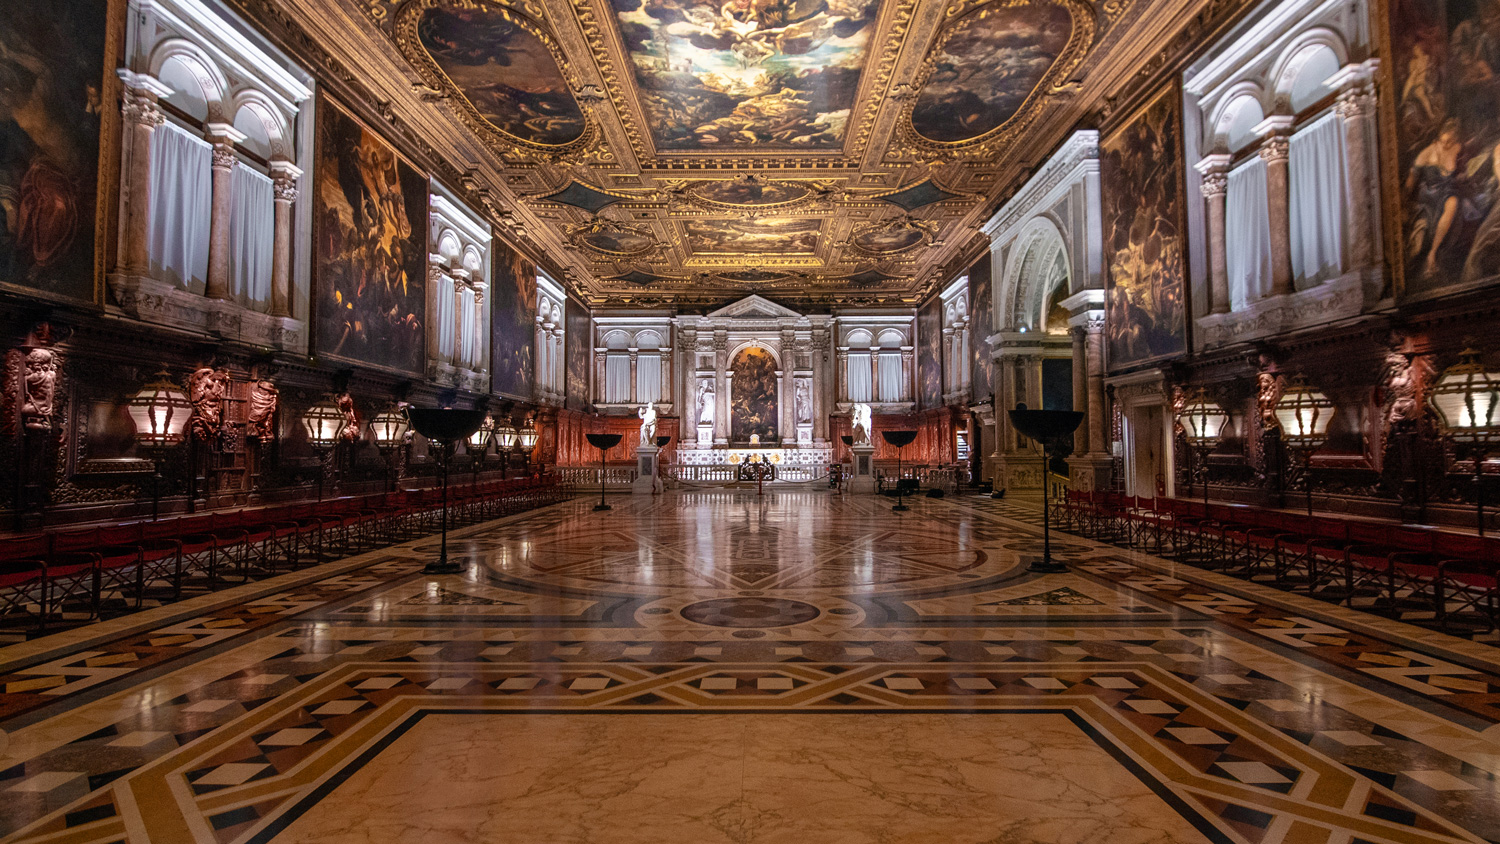 A new lighting system for Tintoretto's masterpieces